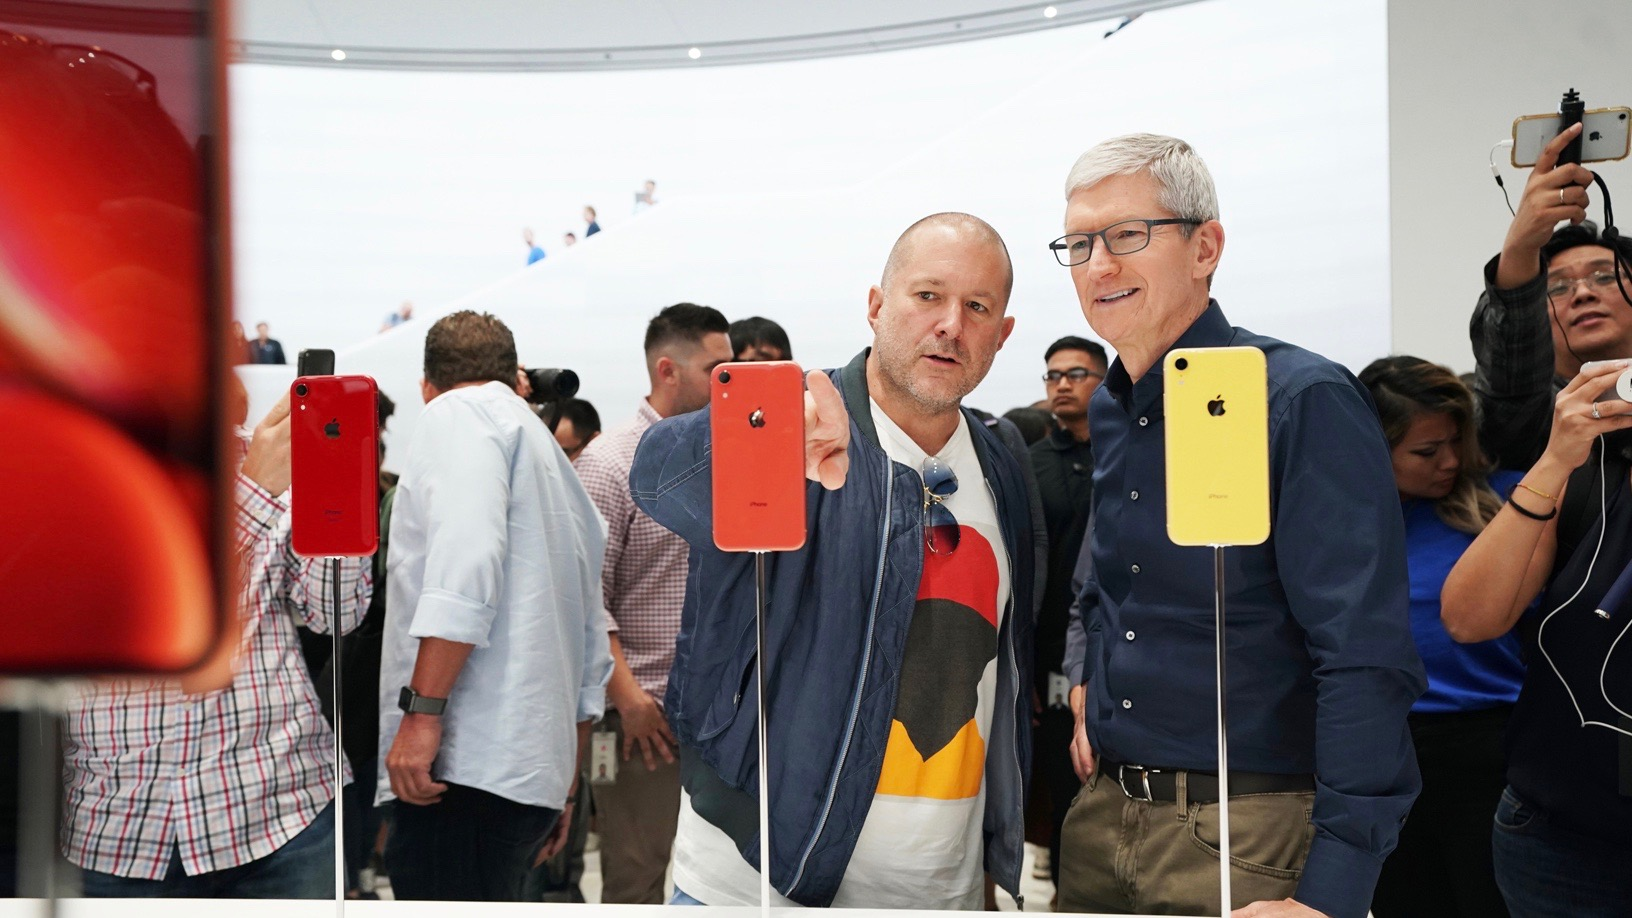 iPhone XS, iPhone XR, iPhone 8, and iPhone 7: Costs, specs, and extra in contrast 7